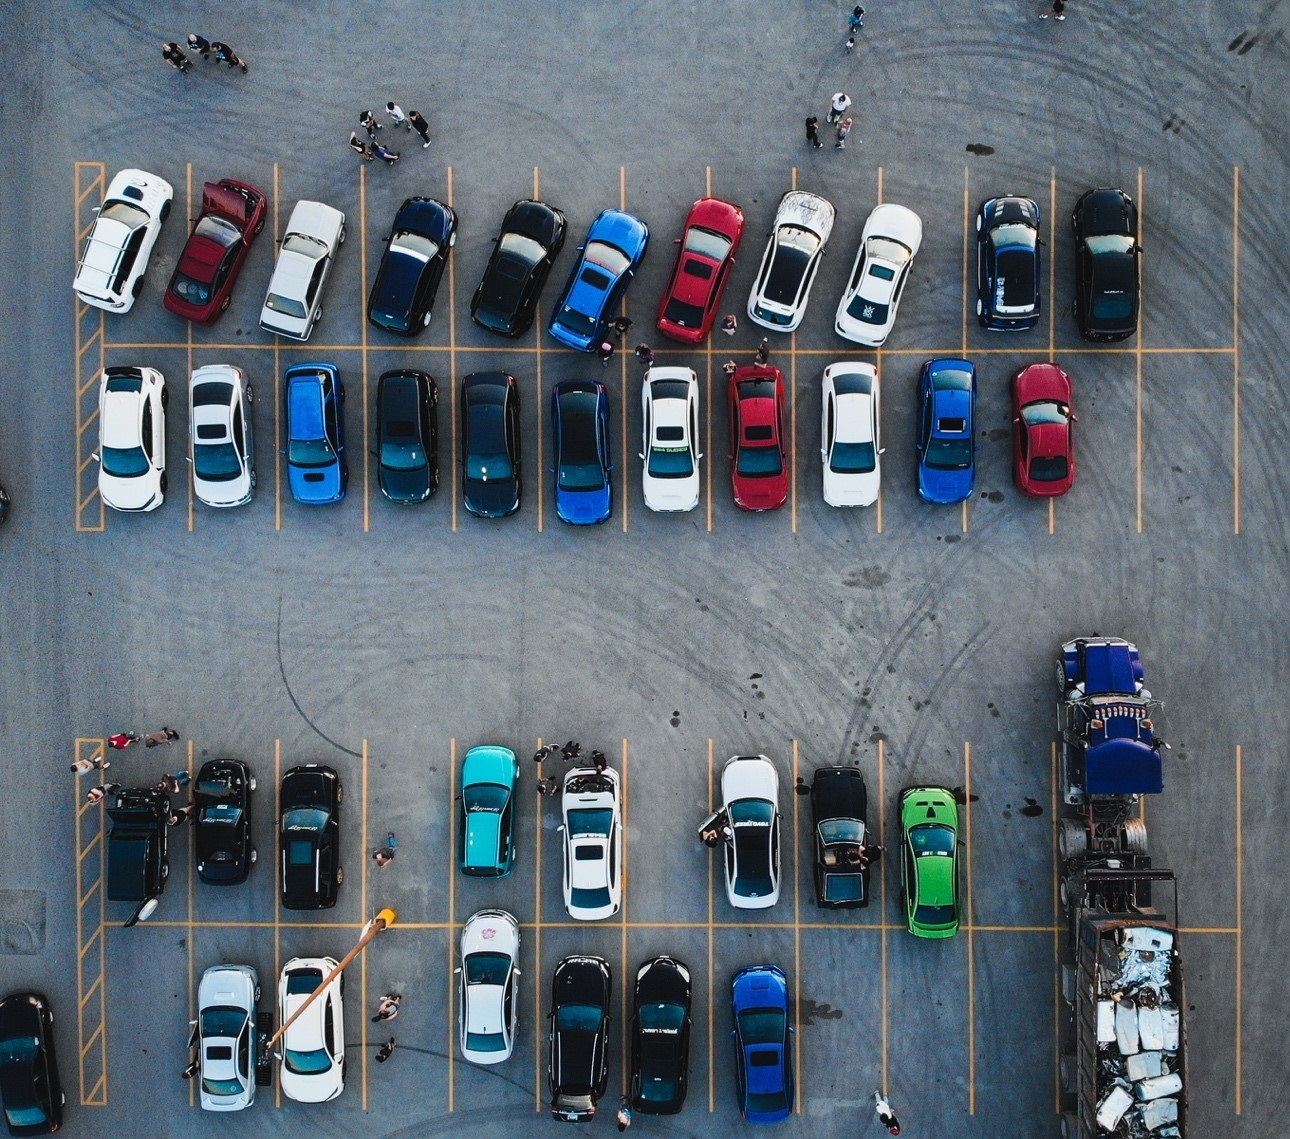 Competing for congestible goods: experimental evidence on parking choice. Pereda, Ozaita, Stavrakakis, Sanchez (2020).